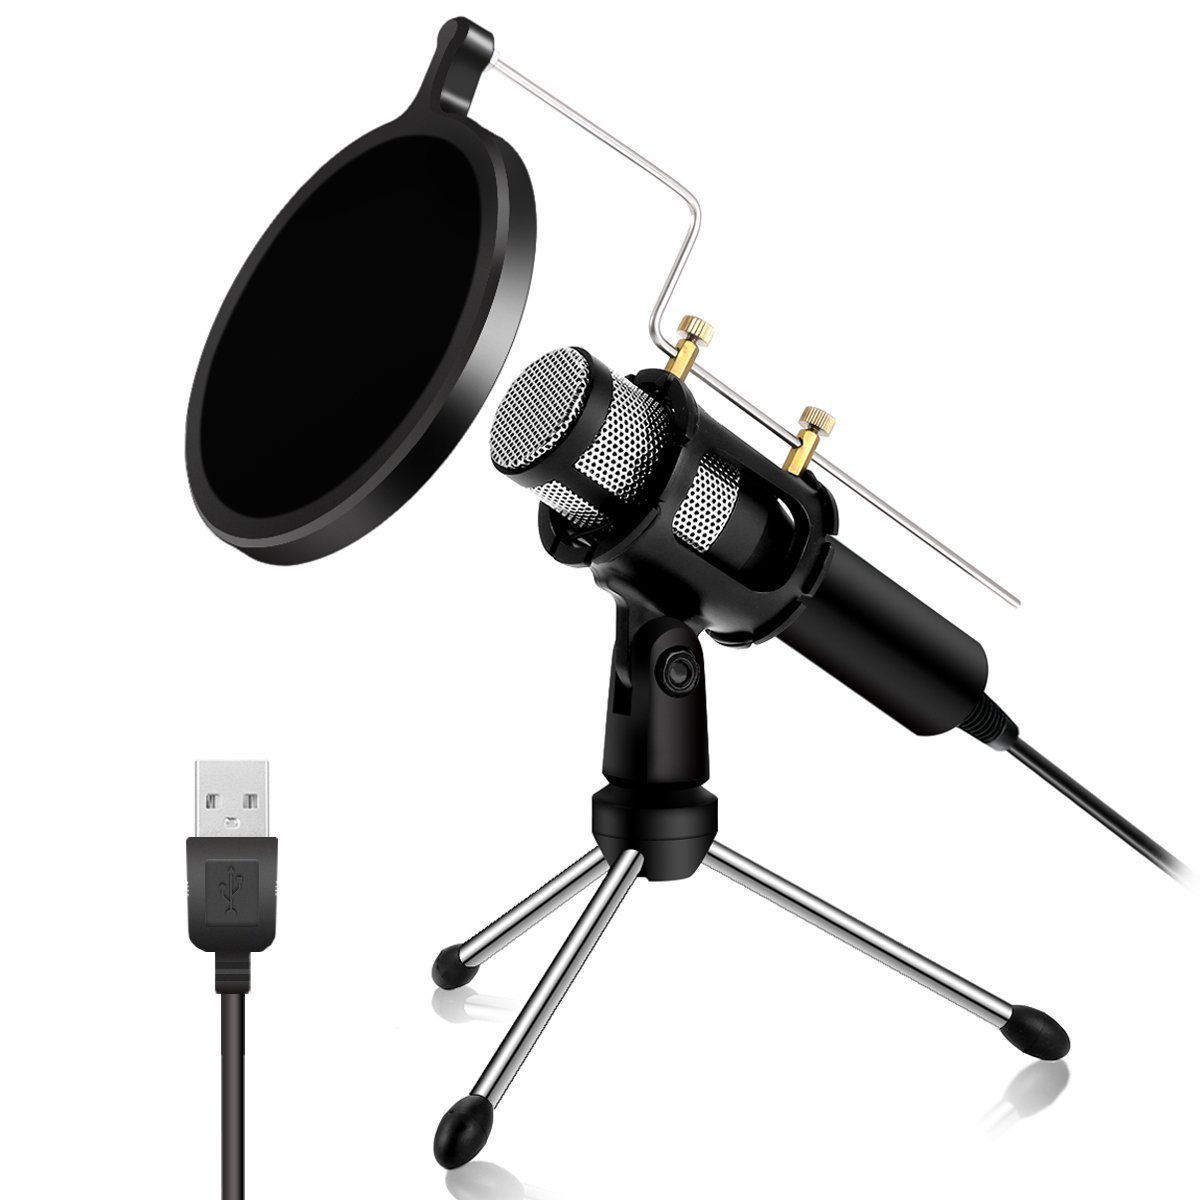 Professional Condenser Microphone - NASUM USB Plug &Play Home Studio microphones, dual-layer acoustic filter, YouTube, Facebook, podcasting, games (Windows/Mac)